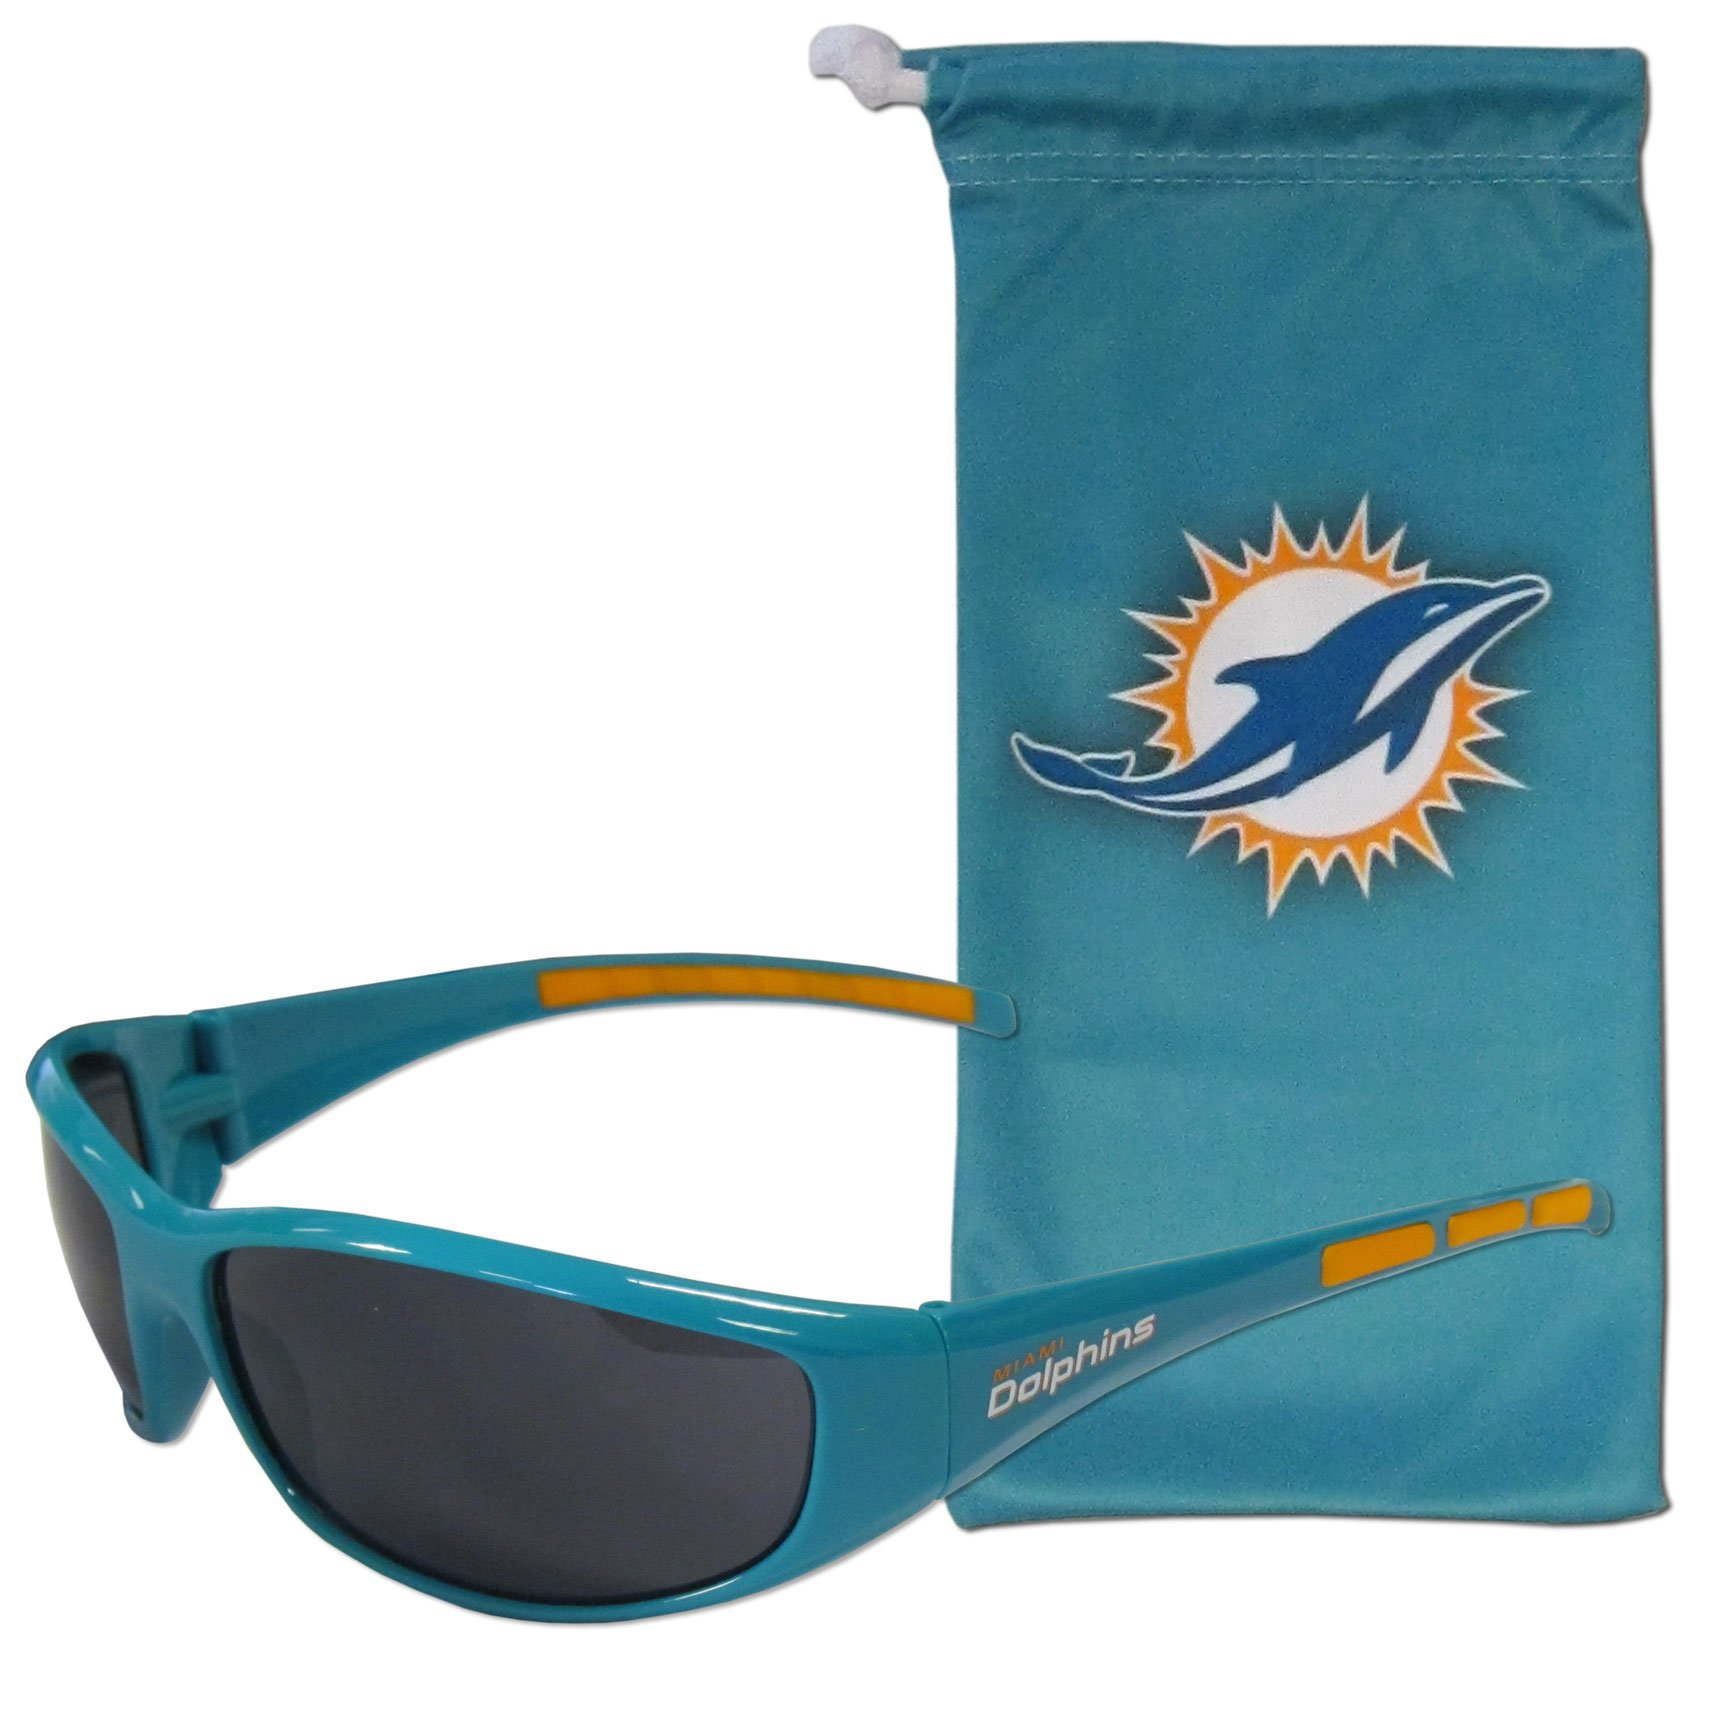 NFL Miami Dolphins Adult Sunglass and Bag Set, Blue